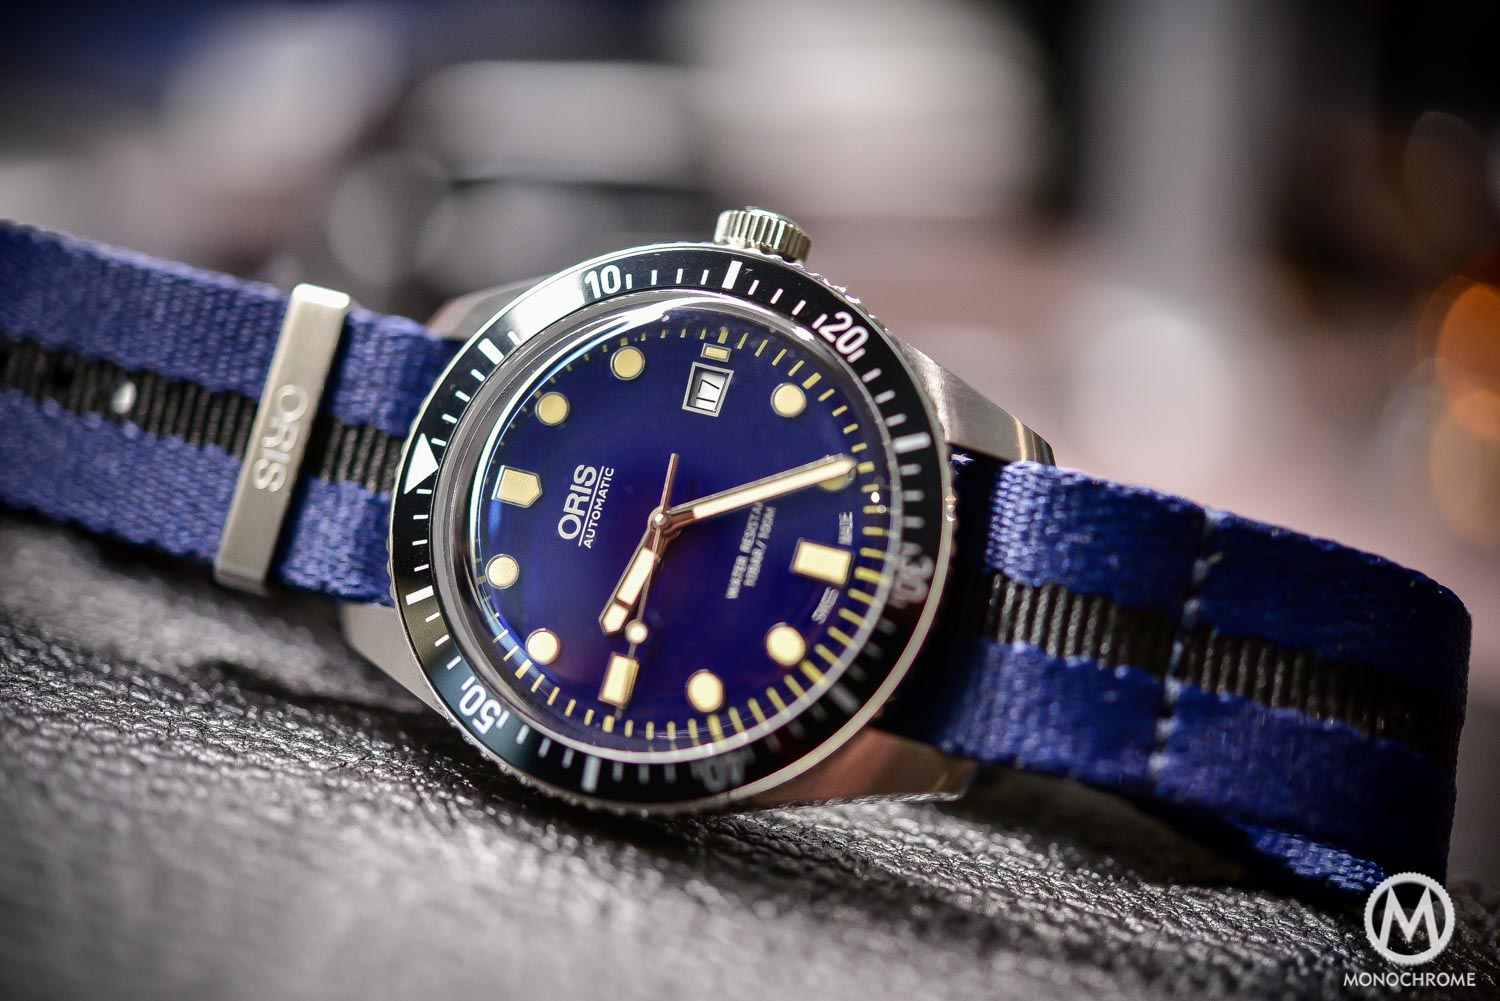 Oris Divers Sixty Five 42mm Blue Dial - Baselworld 2016 - Blue Nato